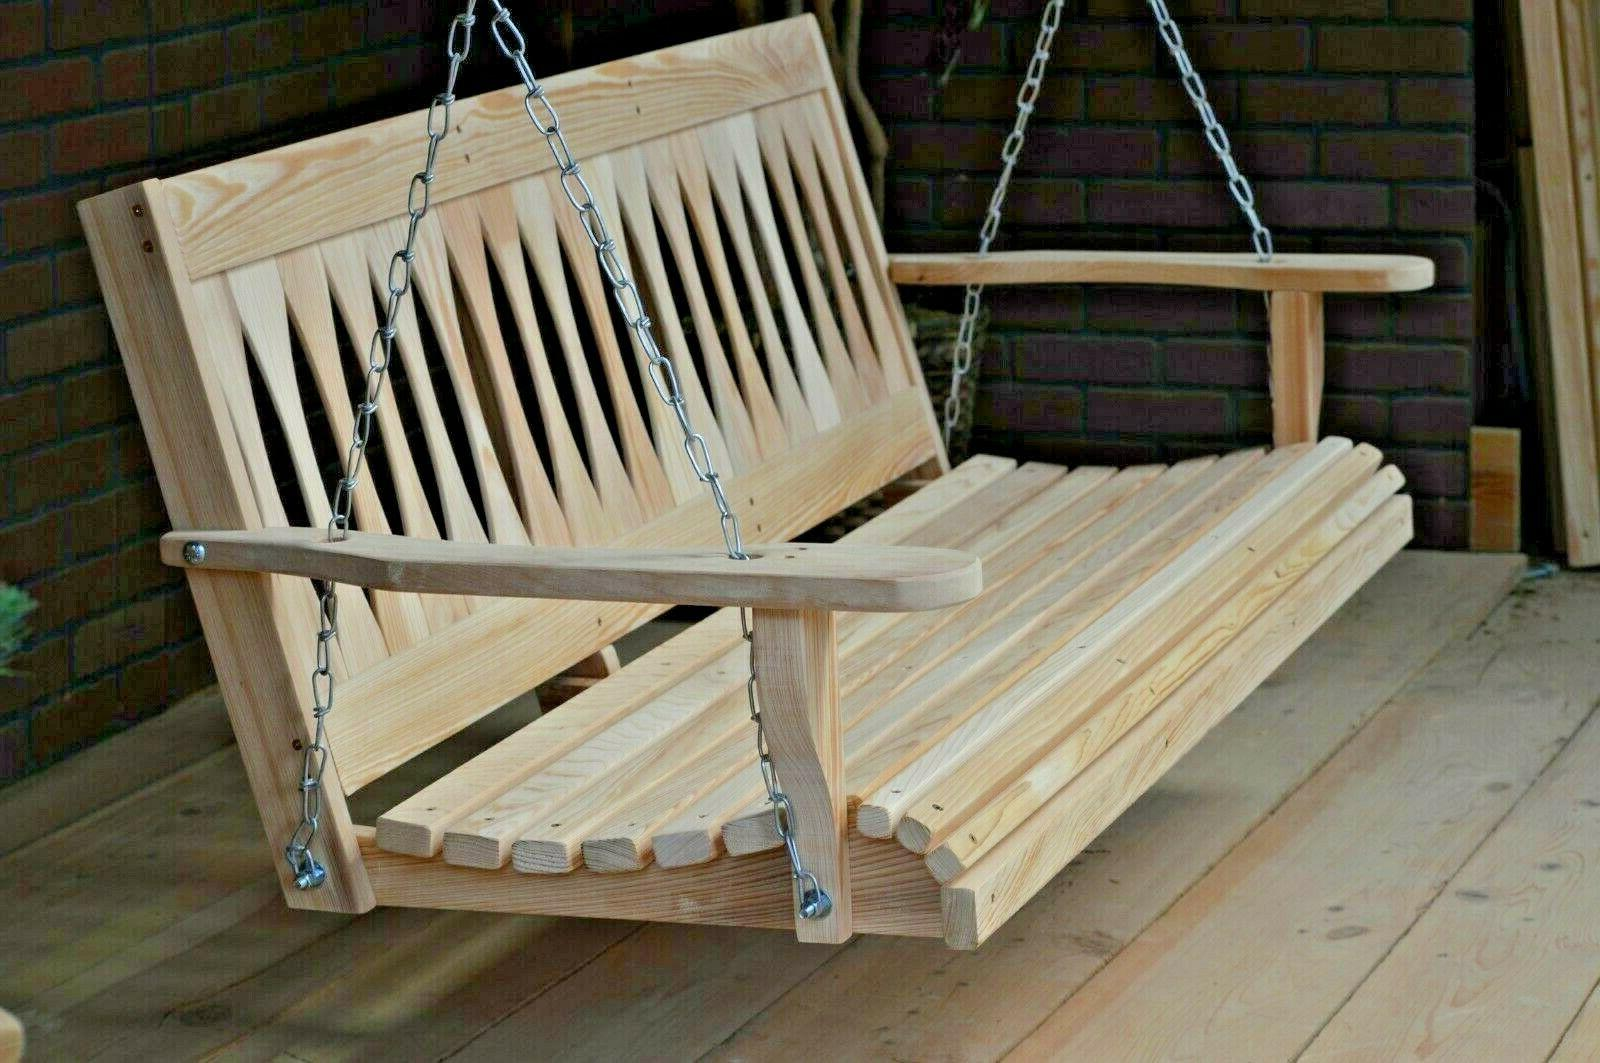 5ft cypress wood diamond porch bench swing